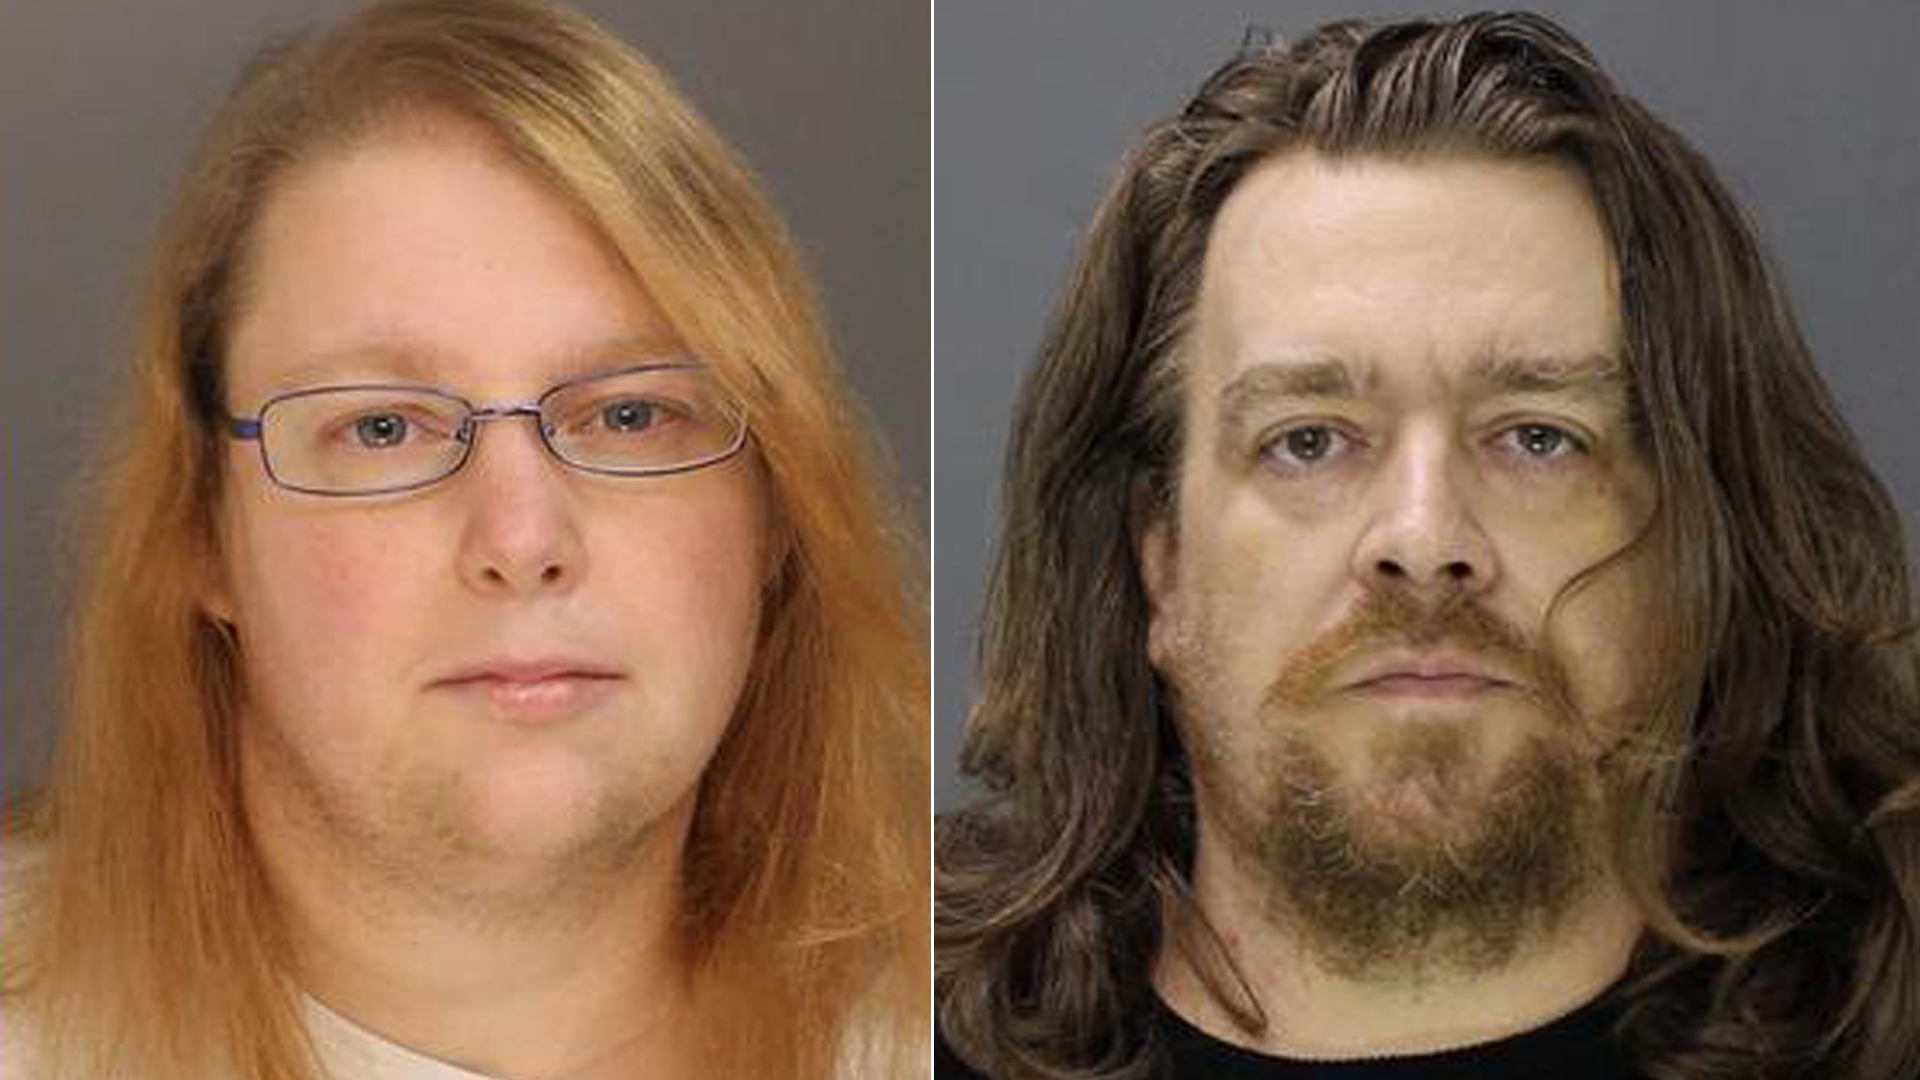 Sara Packer, left, and Jacob Sullivan, right, appear in undated booking photos. (Credit: Bucks County District Attorney/ Twitter)